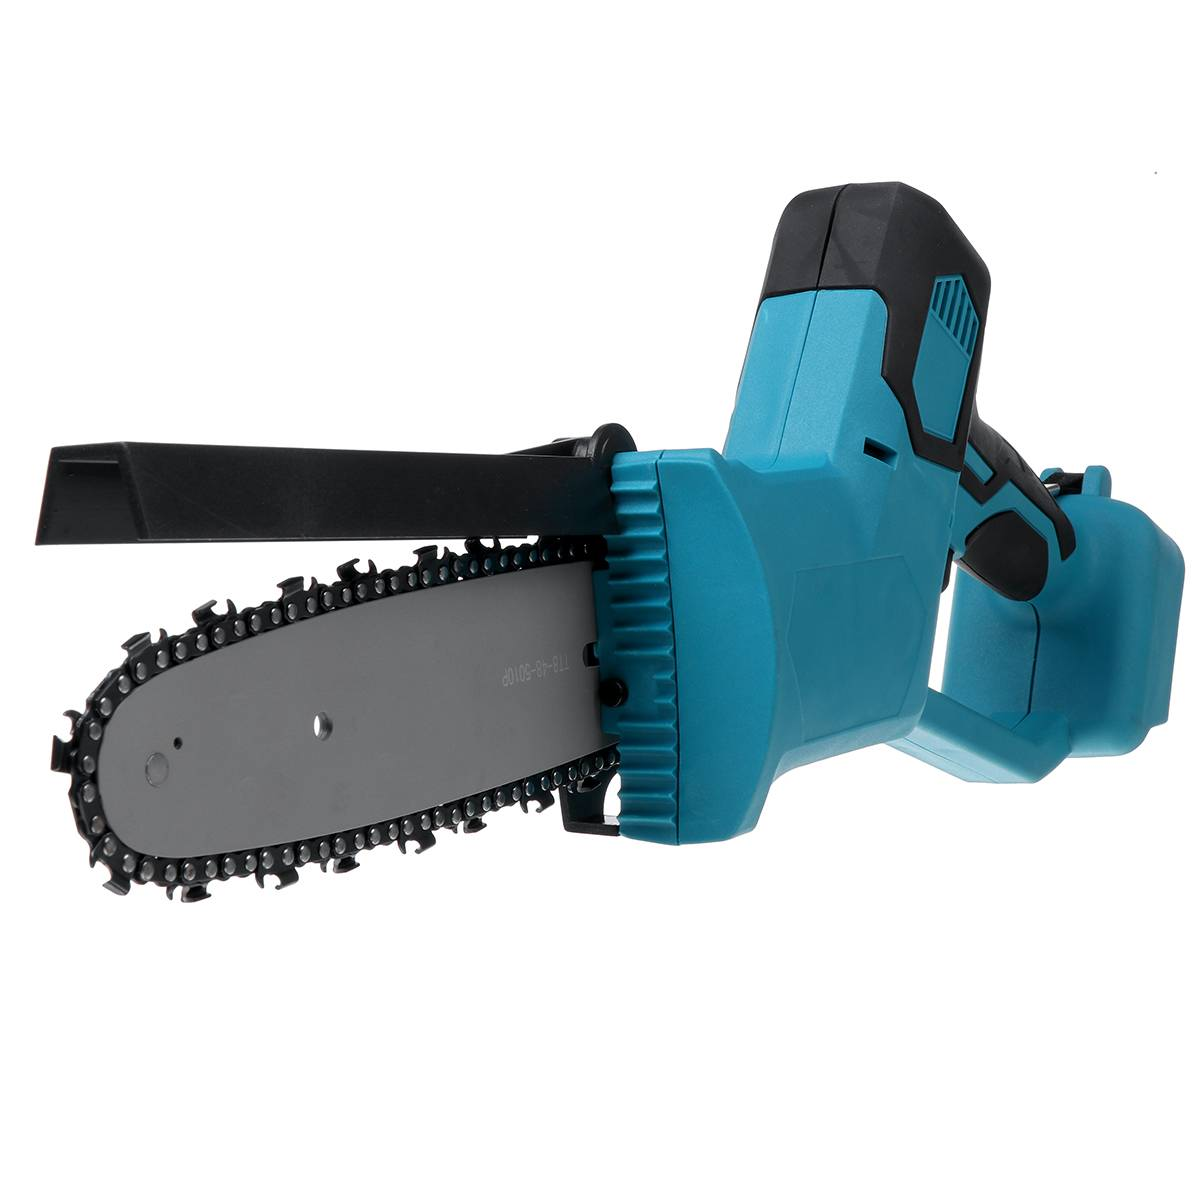 Chainsaw Only Battery Inch 1080W Makita Wood Cutters  Saw Tool 18V For Bracket Power Saw  Tool Chain Electric 8